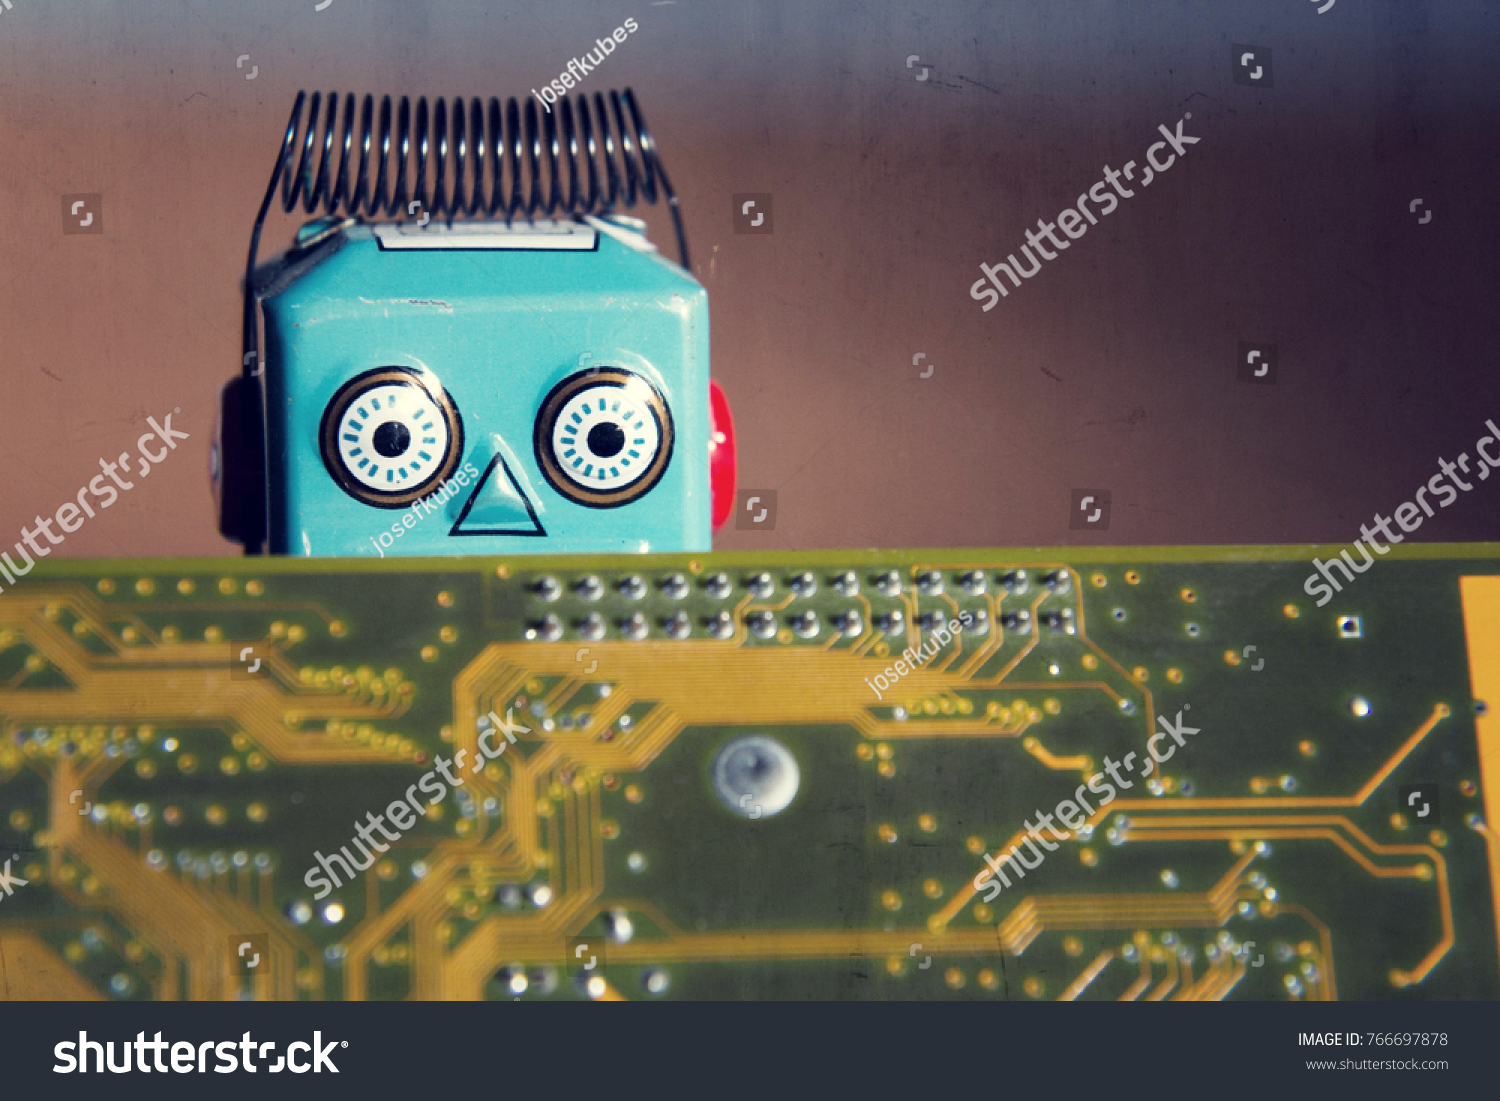 Vintage Tin Toy Robot Hiding Behind Stock Photo Edit Now 766697878 Circuit Board Orange Computer Artificial Intelligence Concept